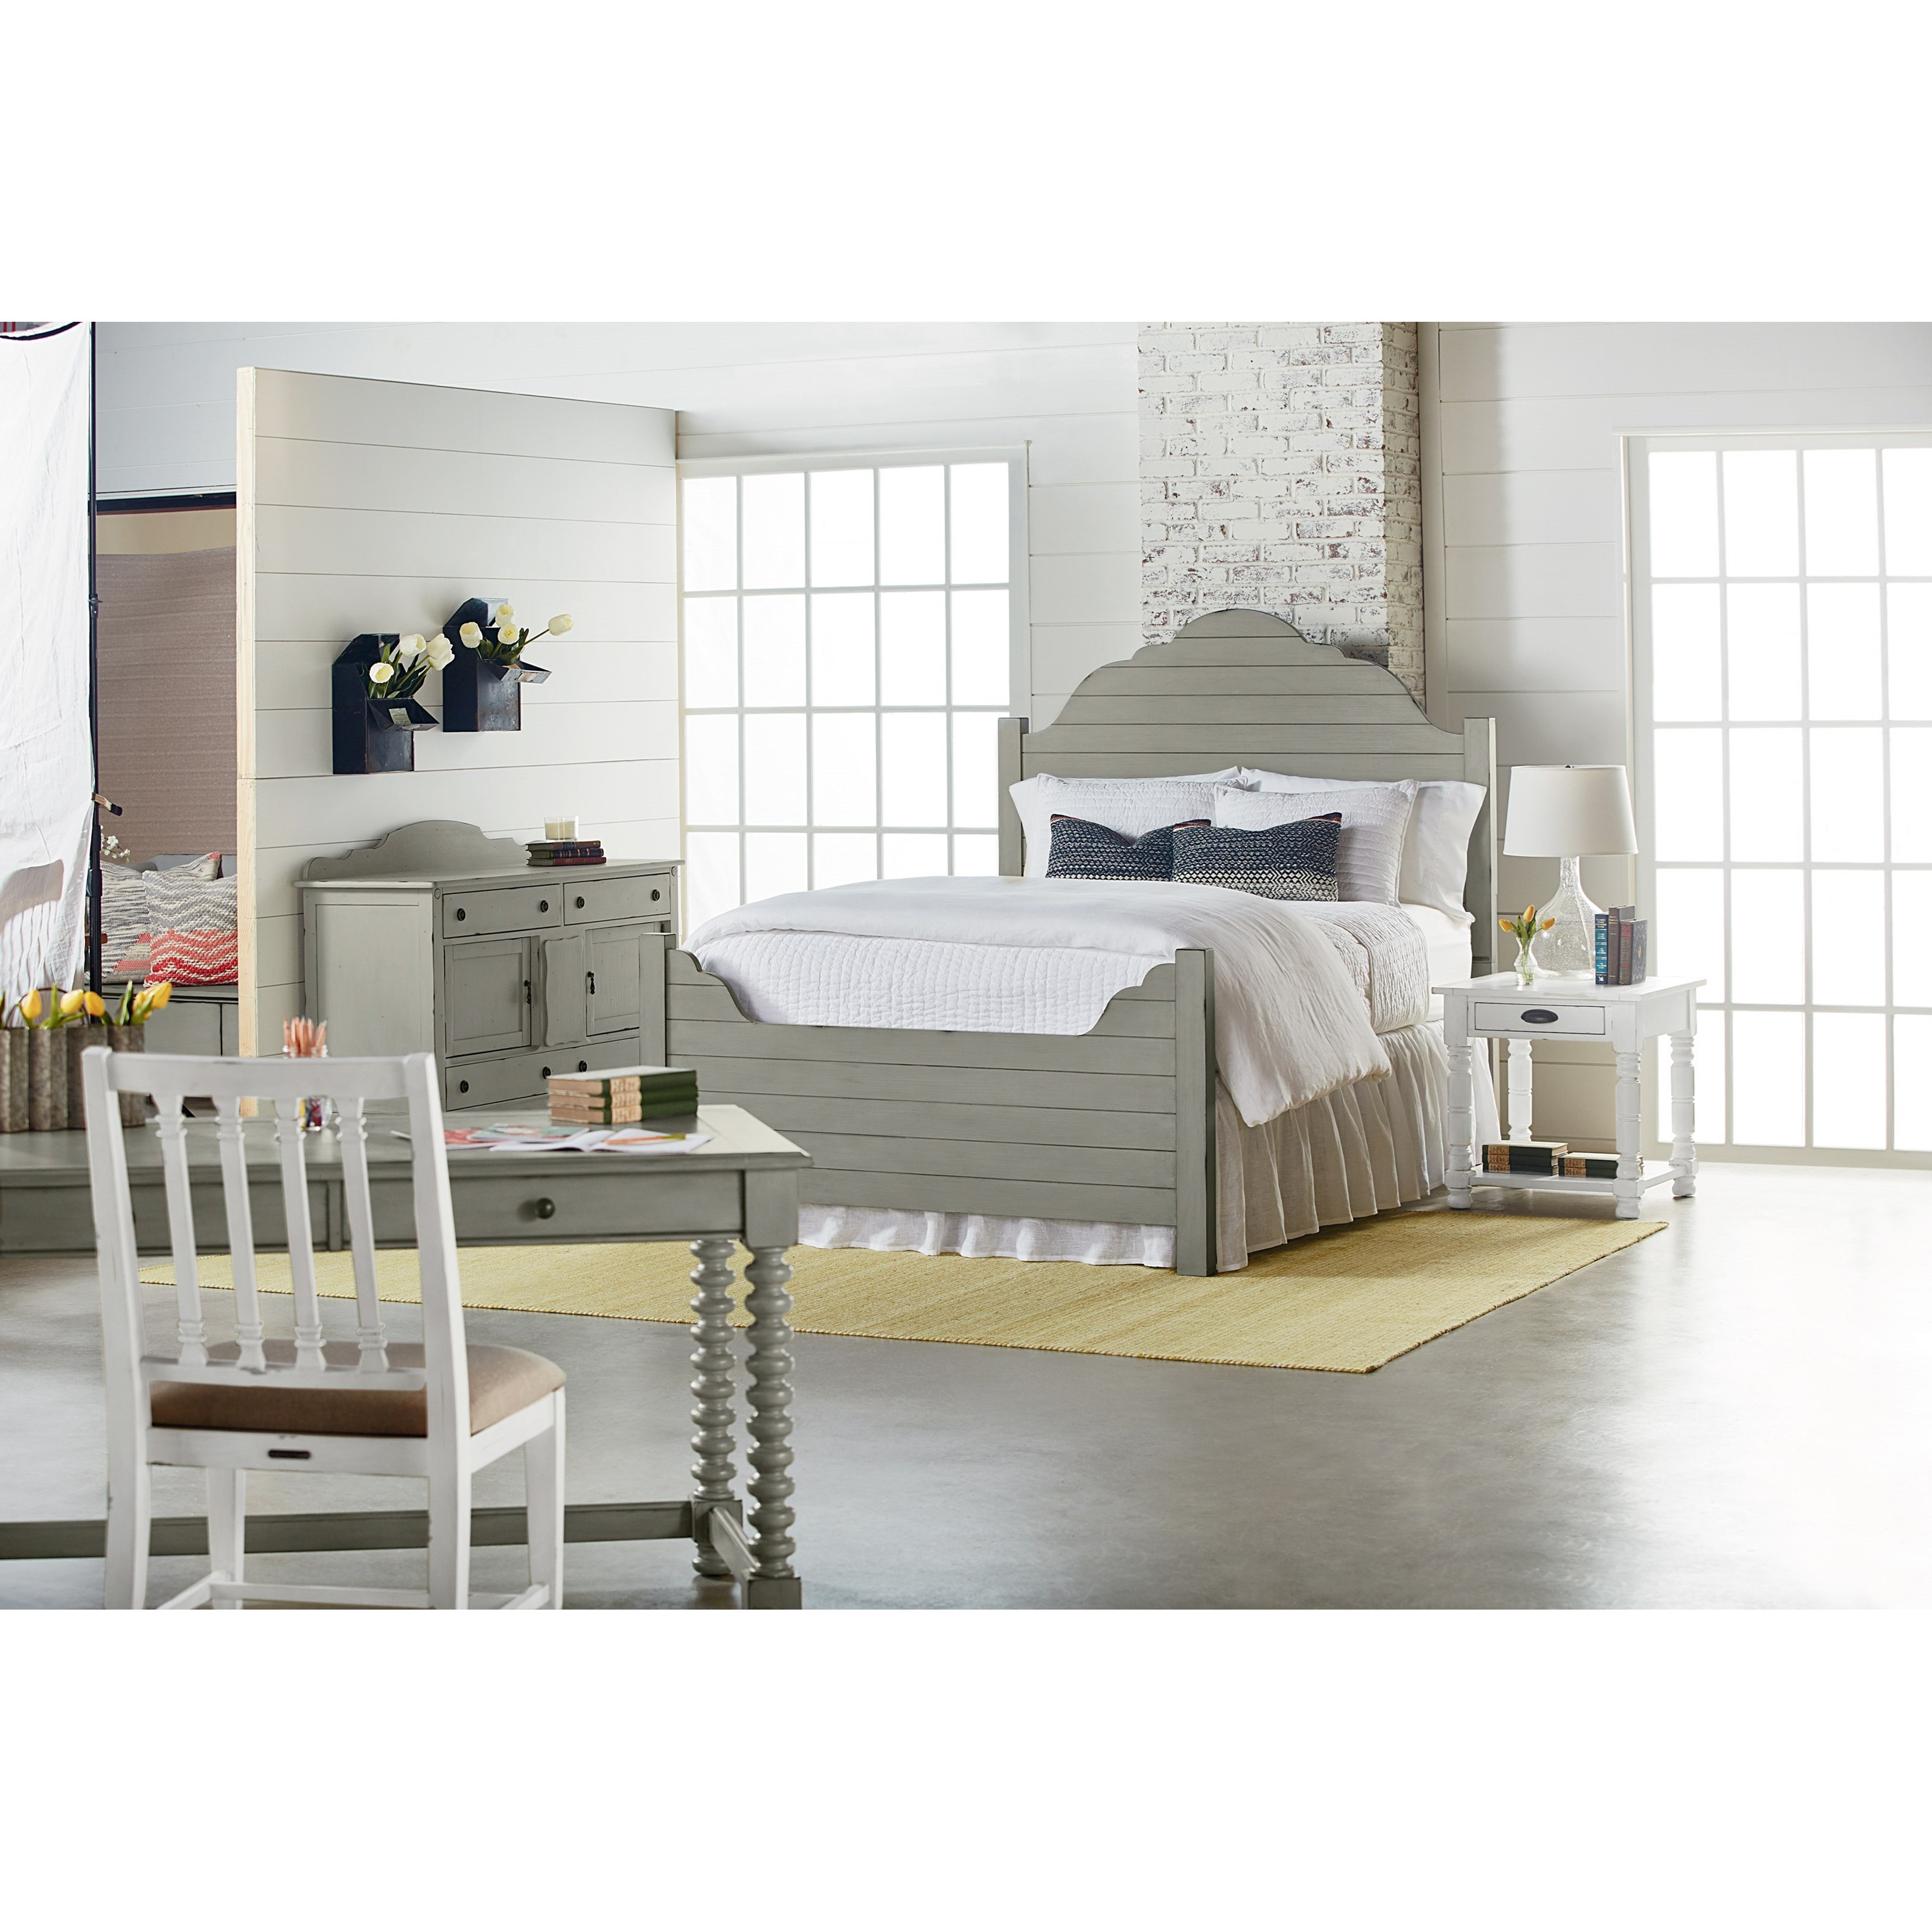 Magnolia Home By Joanna Gaines Traditional Bedroom With Shiplap Bed